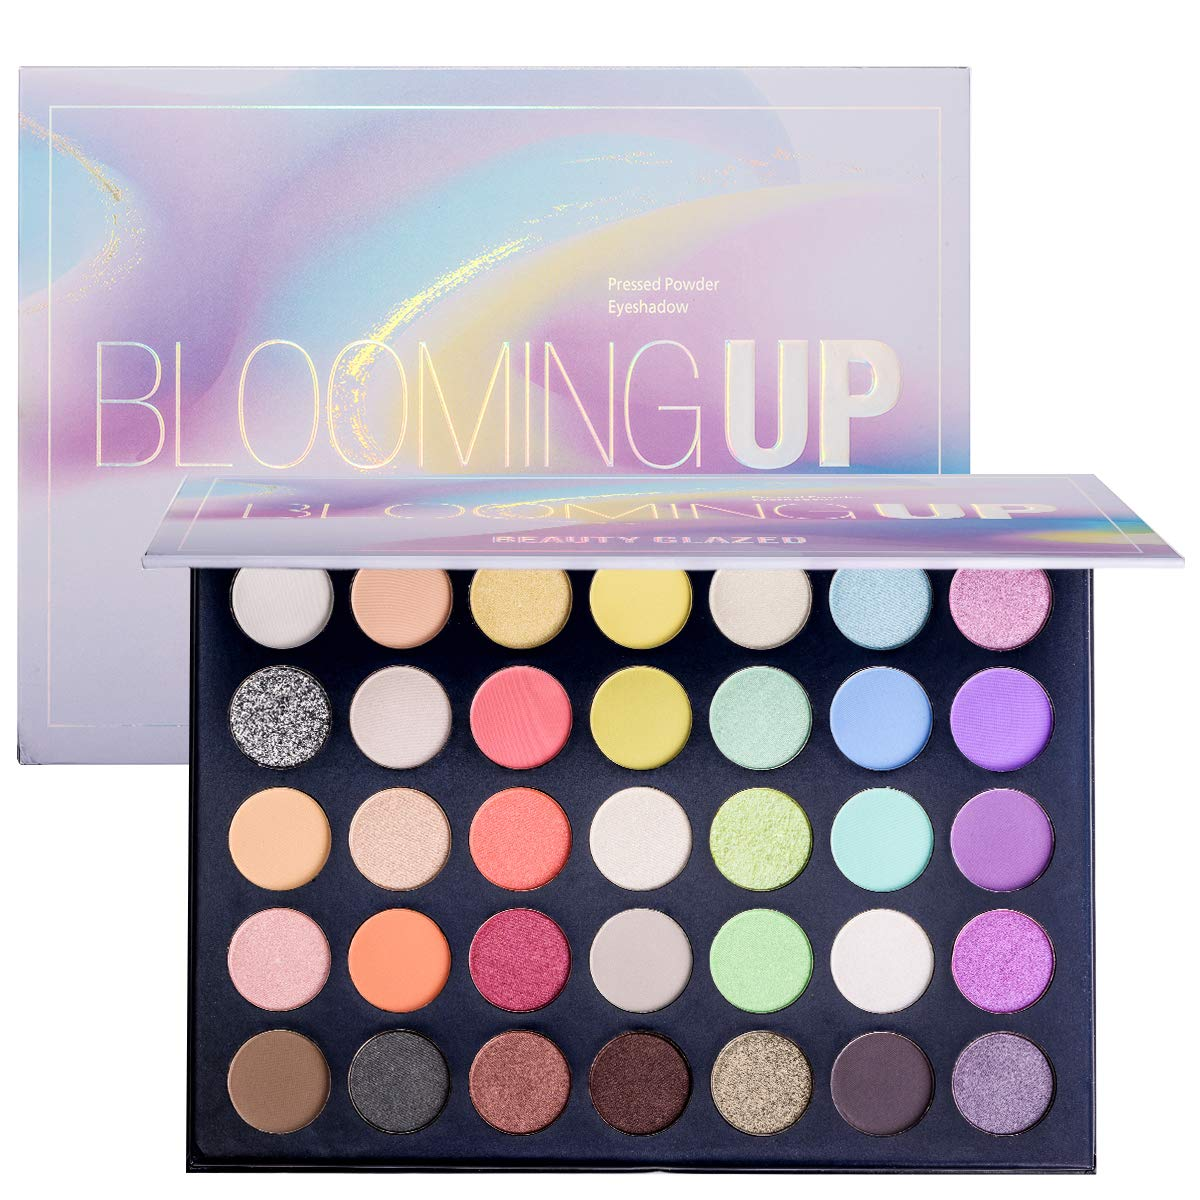 Beauty Glazed Eye Makeup Palette Glitter Matte and Shimmer Highlighter Eyeshadow Makeup Palette 35 Colors Make Up Palette Blooming Up Eye Shadow High Pigmented Blendable Waterproof and Sweatproof